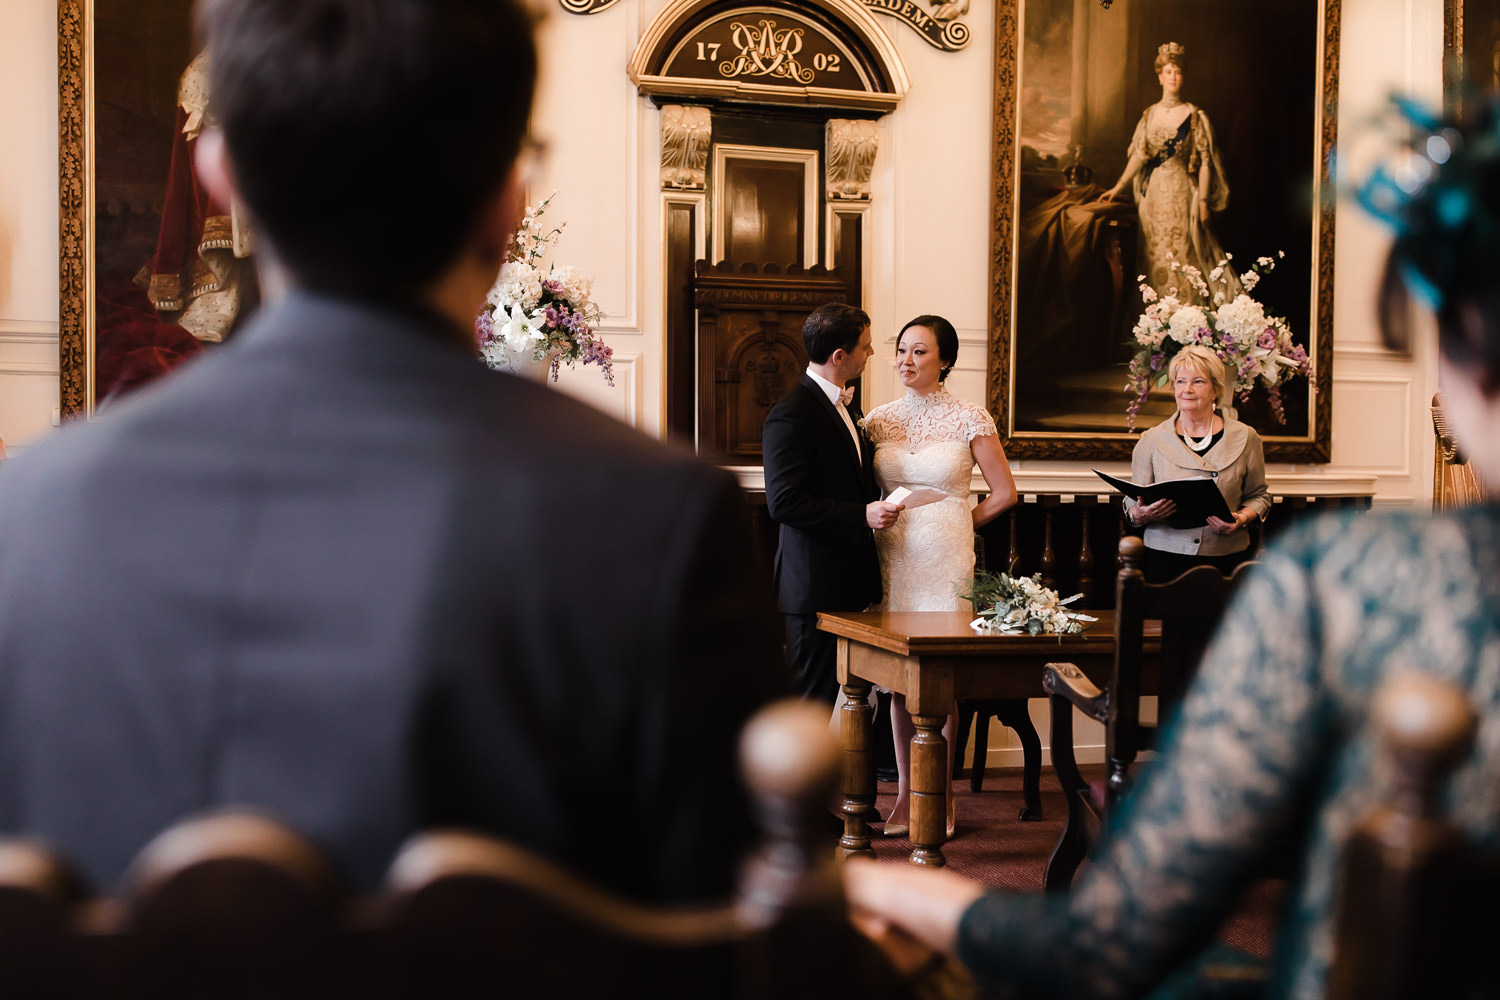 Windsor_Guildhall_wedding_ceremony_Castle_Hotel_082.jpg